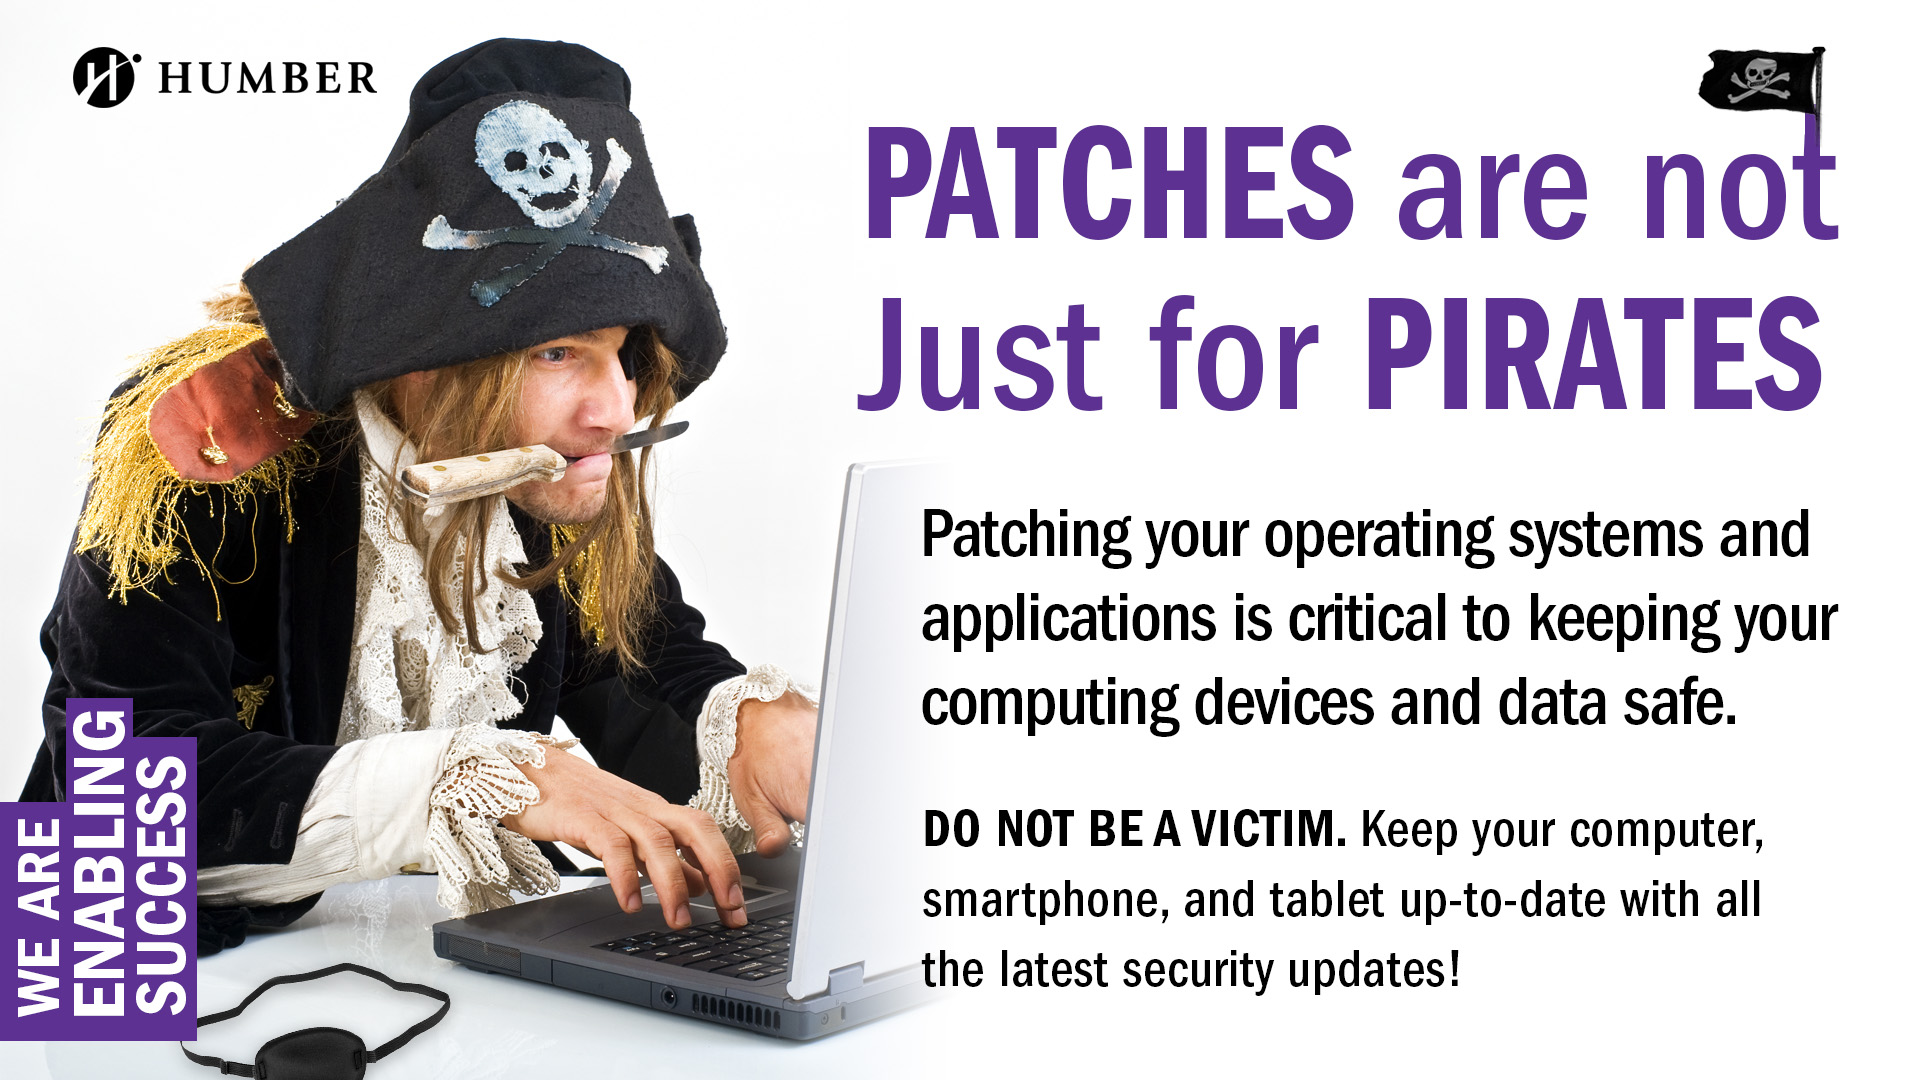 PATCHES are not Just for PIRATES Anymore